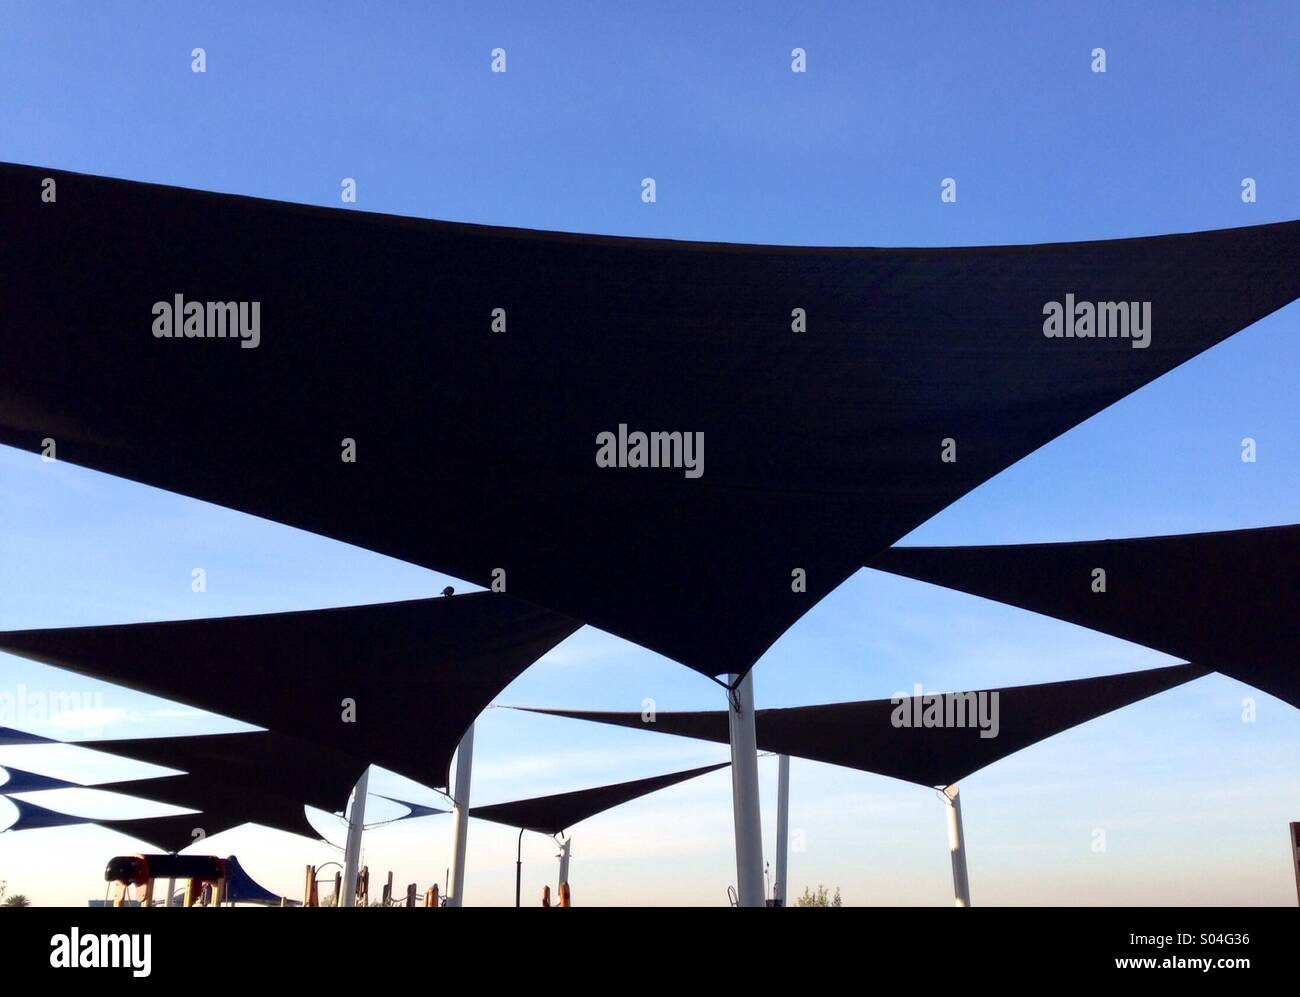 Shade sails by the sea - Stock Image